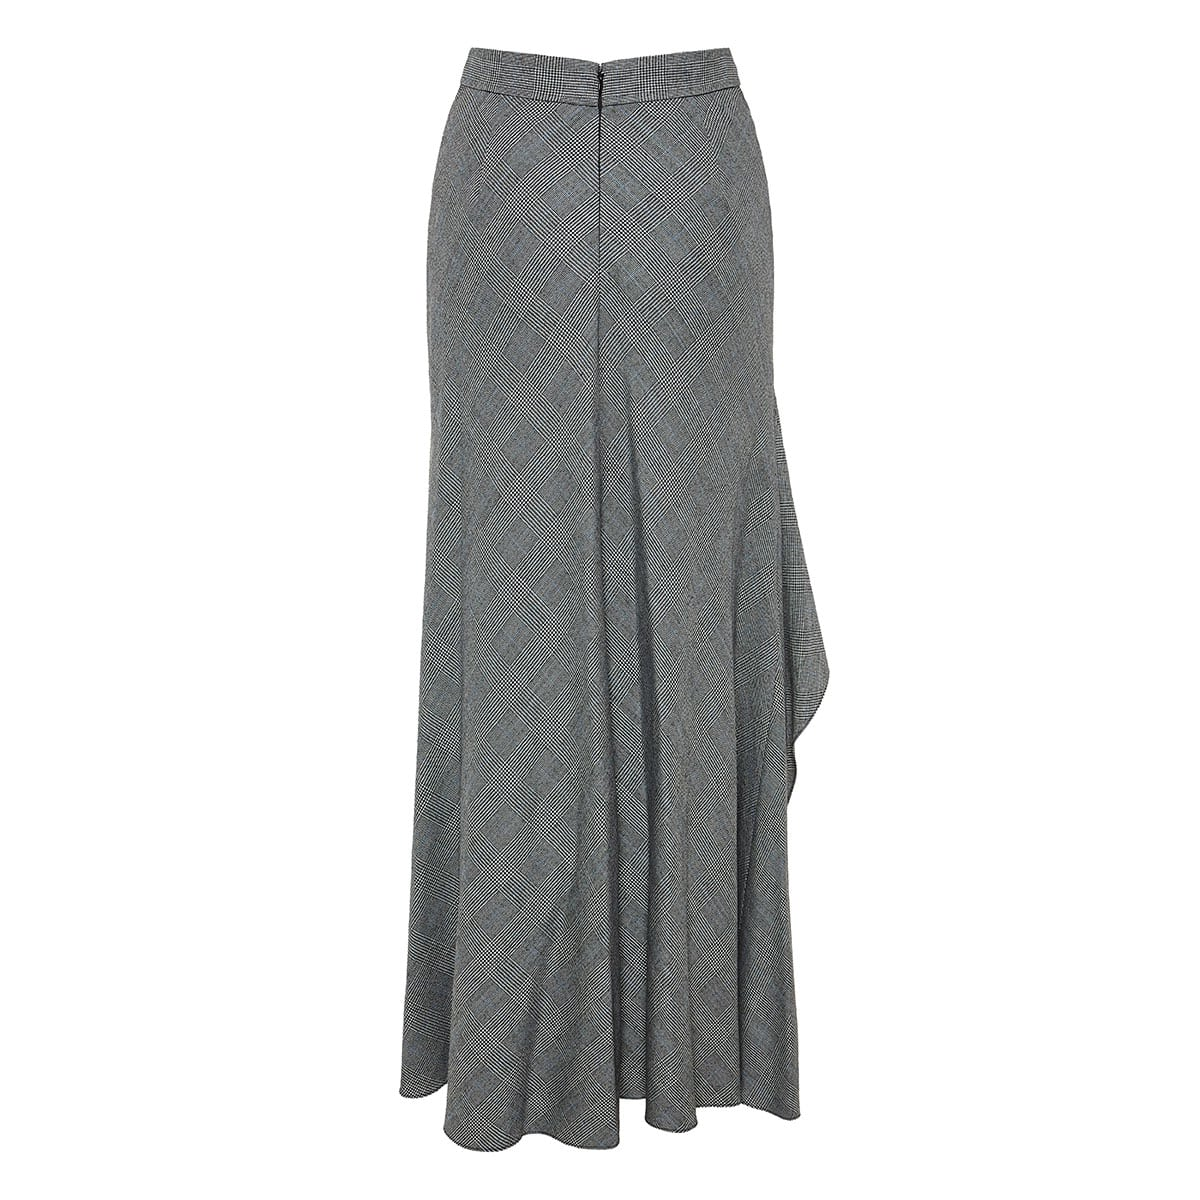 Checked asymmetric ruffled skirt